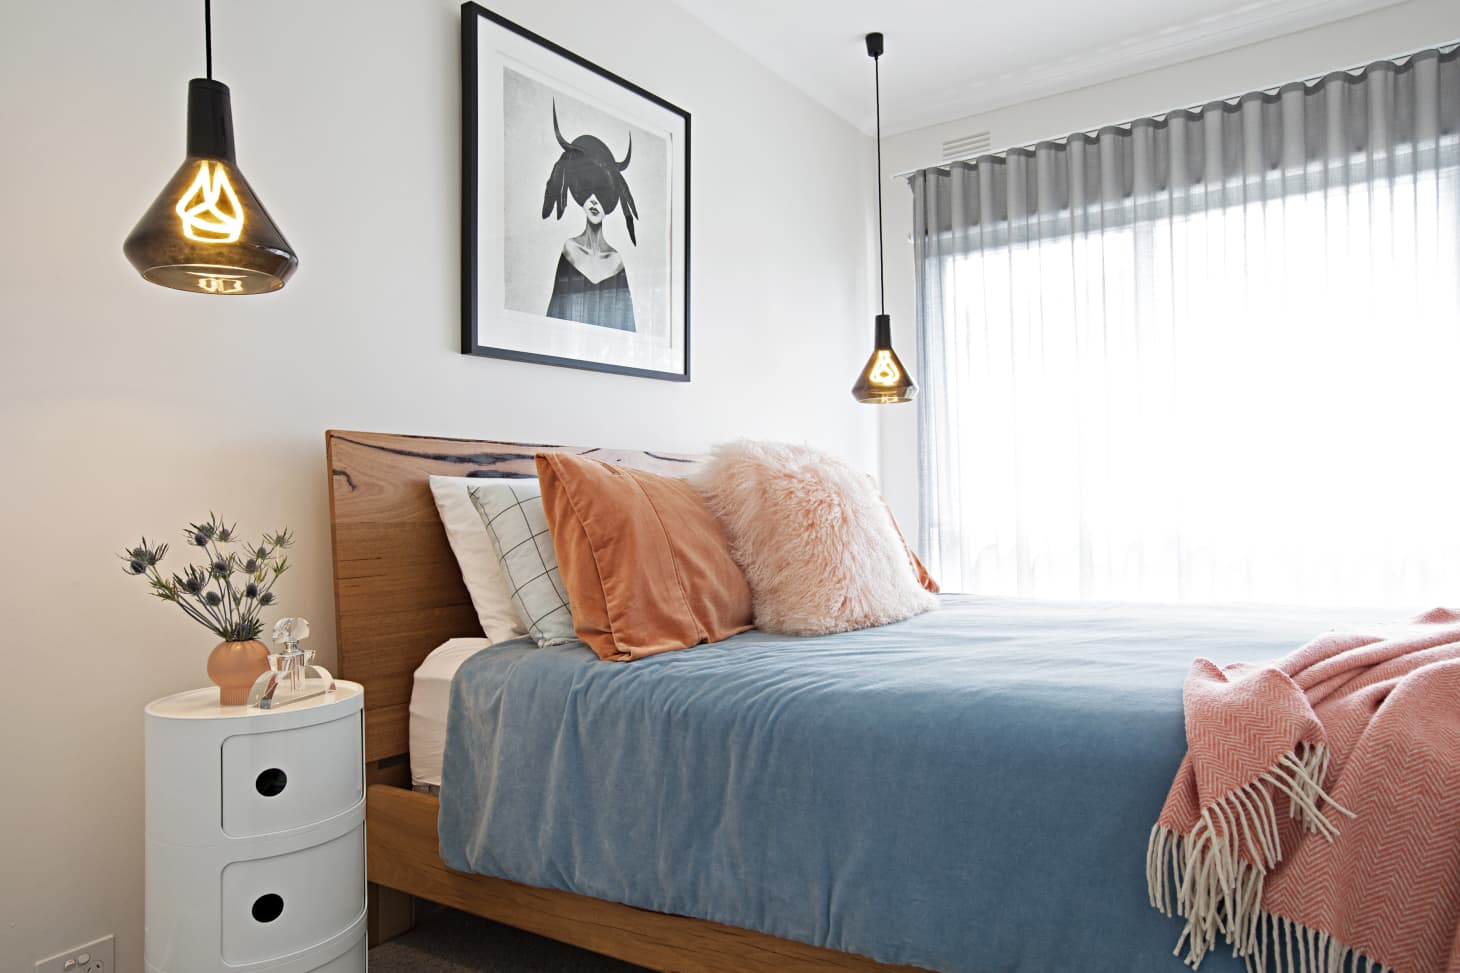 . Best Small Bedroom Ideas   Design and Storage Tips   Apartment Therapy